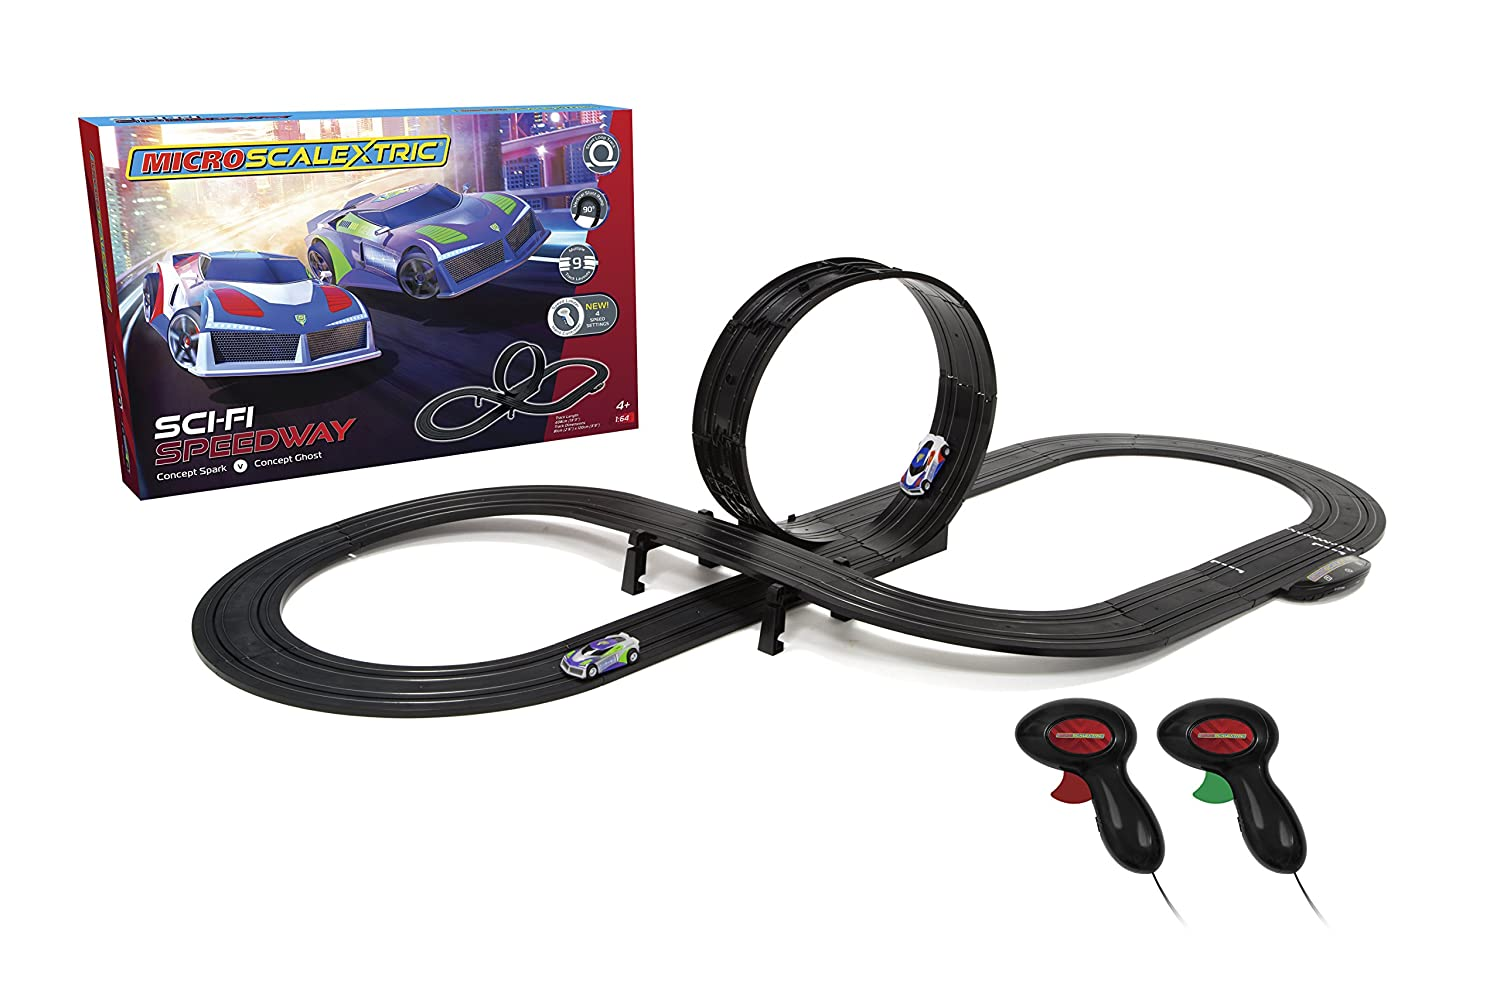 Scalextric G1133 Micro Sci-Fi Speedway Racing Set: Amazon.co.uk ...